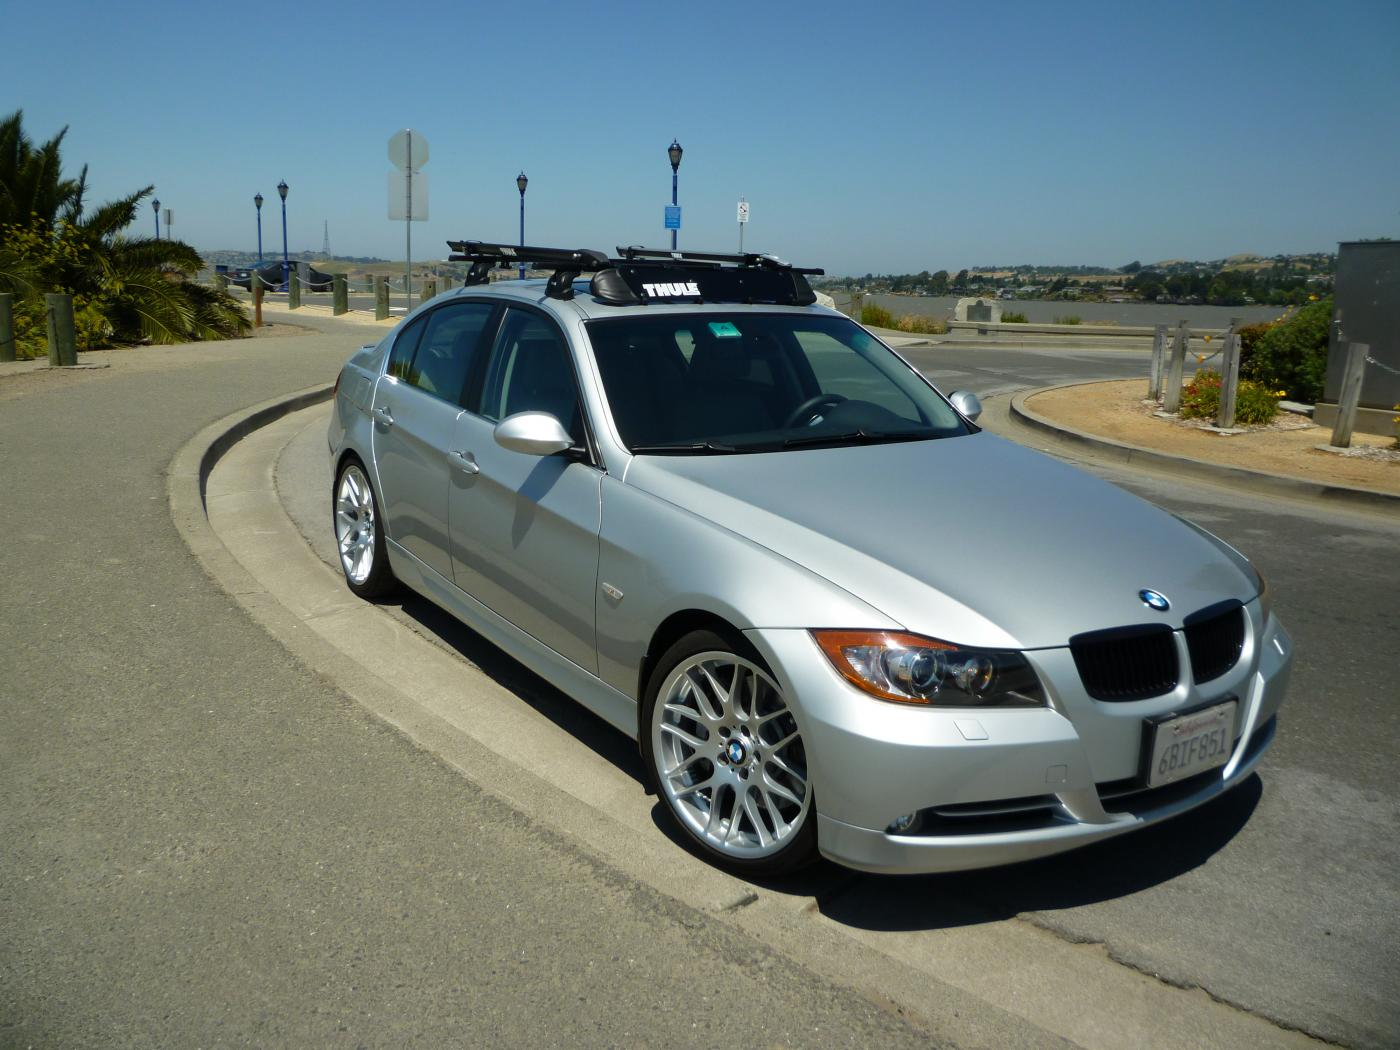 Best Bike Rack For 2011 335i